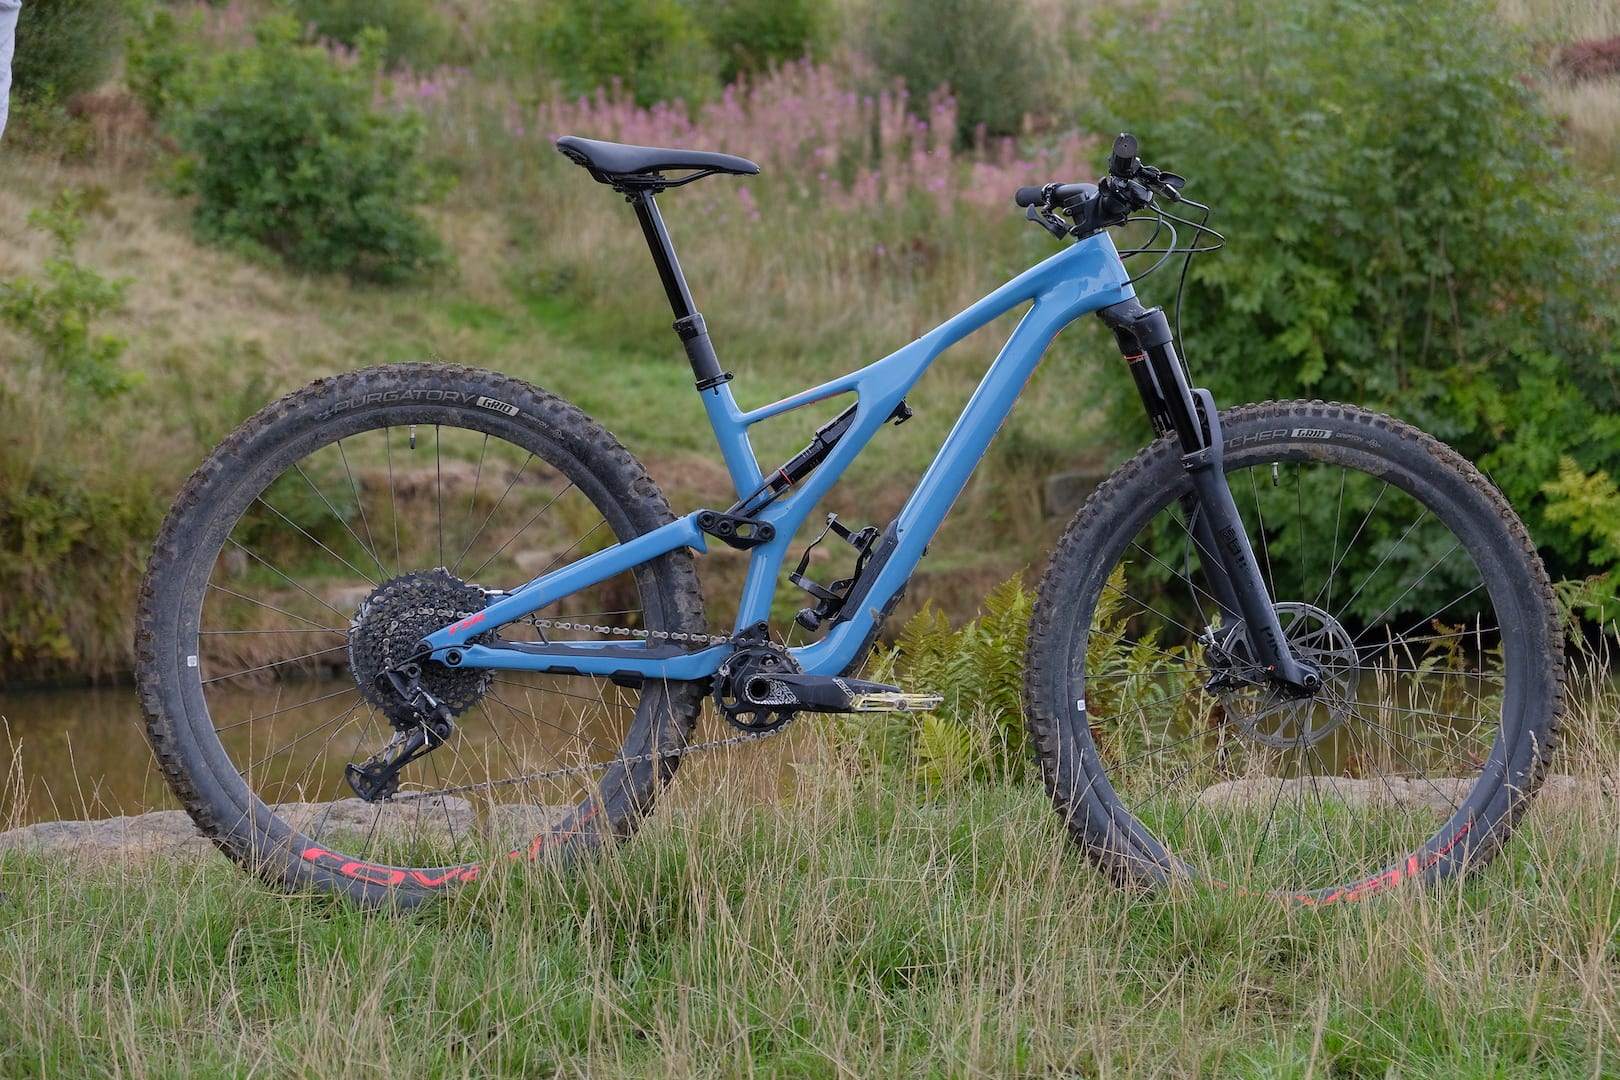 Review: The Specialized Stumpjumper Expert Carbon 29 rides